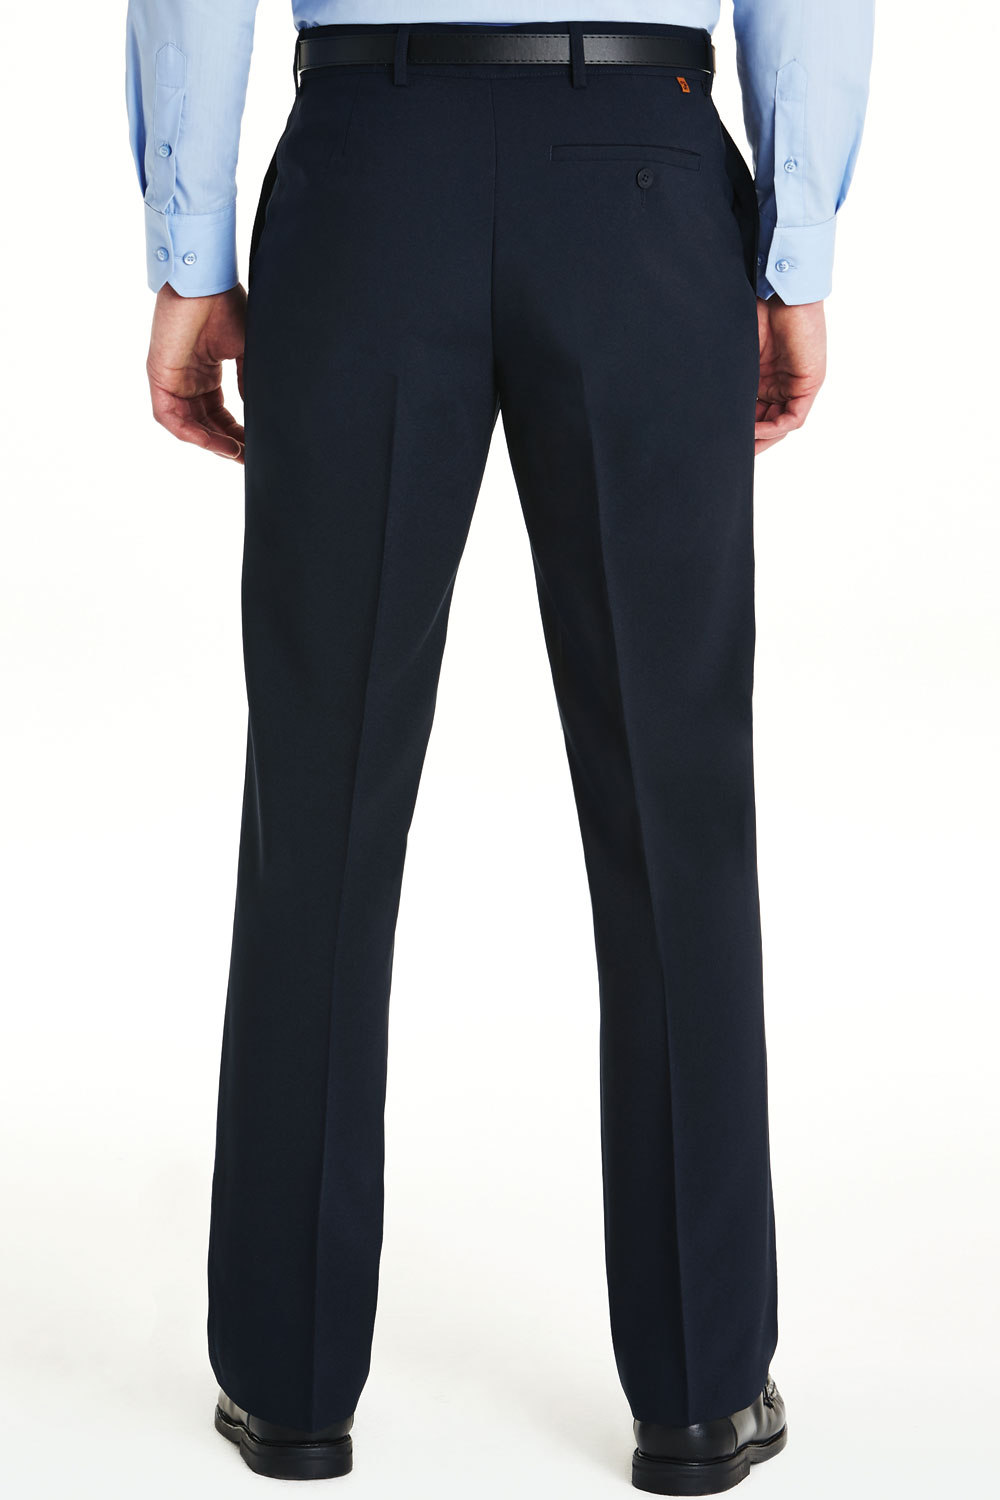 Mens-Farah-Slant-Pocket-Formal-Classic-Trouser-Pants thumbnail 23